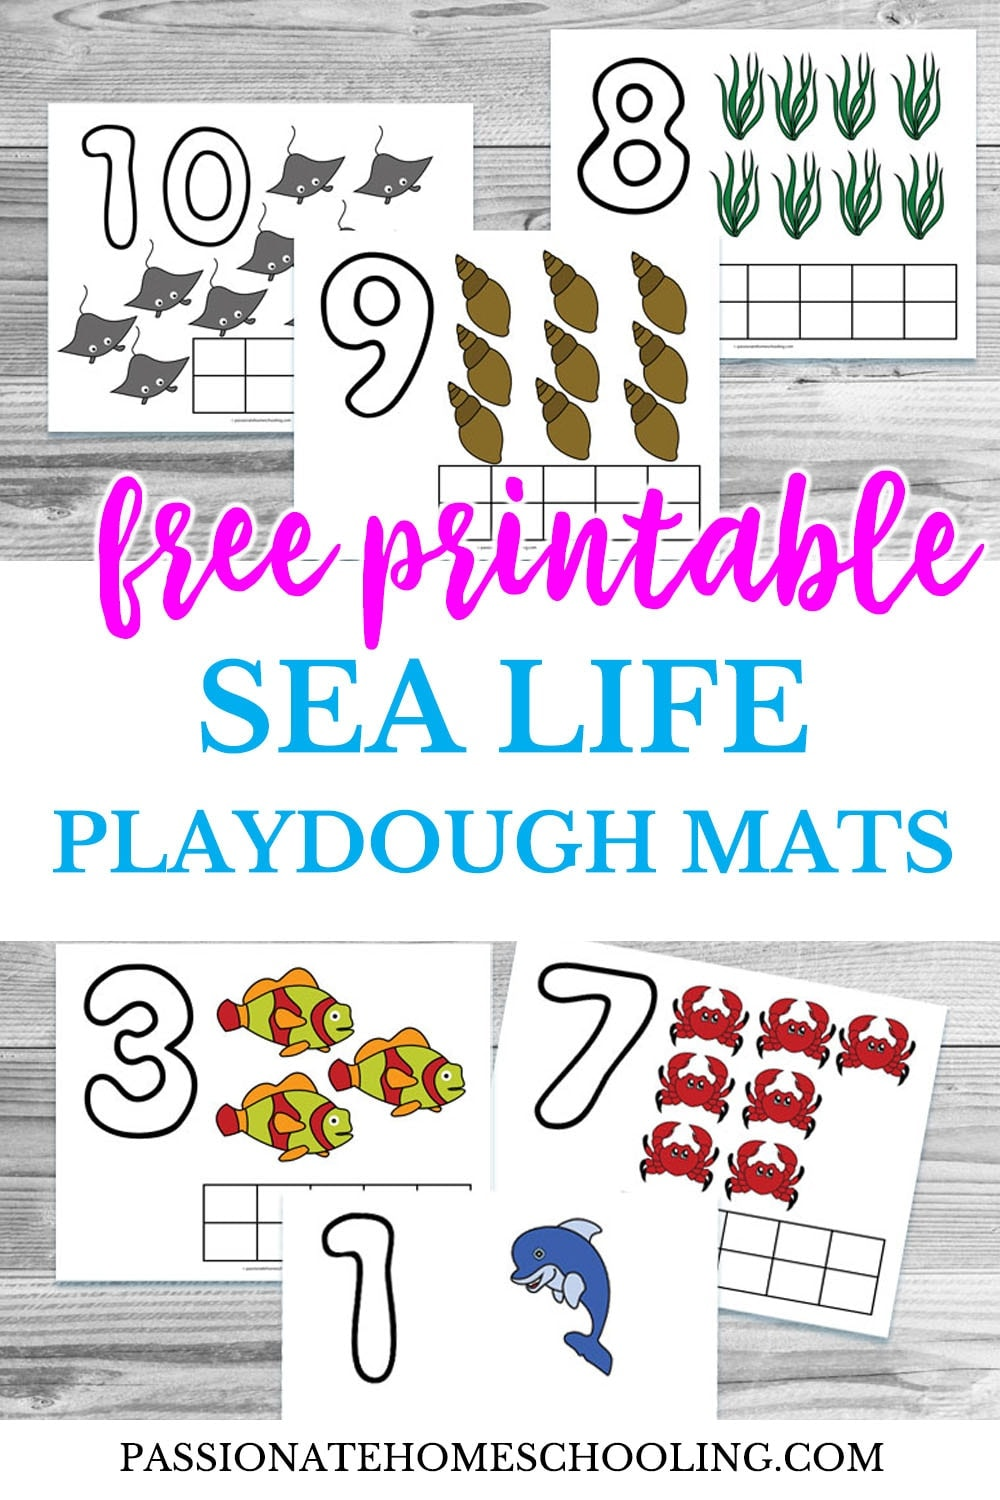 Free Printable Sea Life Playdough Mats text overlaid on a collage photo of ocean themed playdough mats for counting to 10.